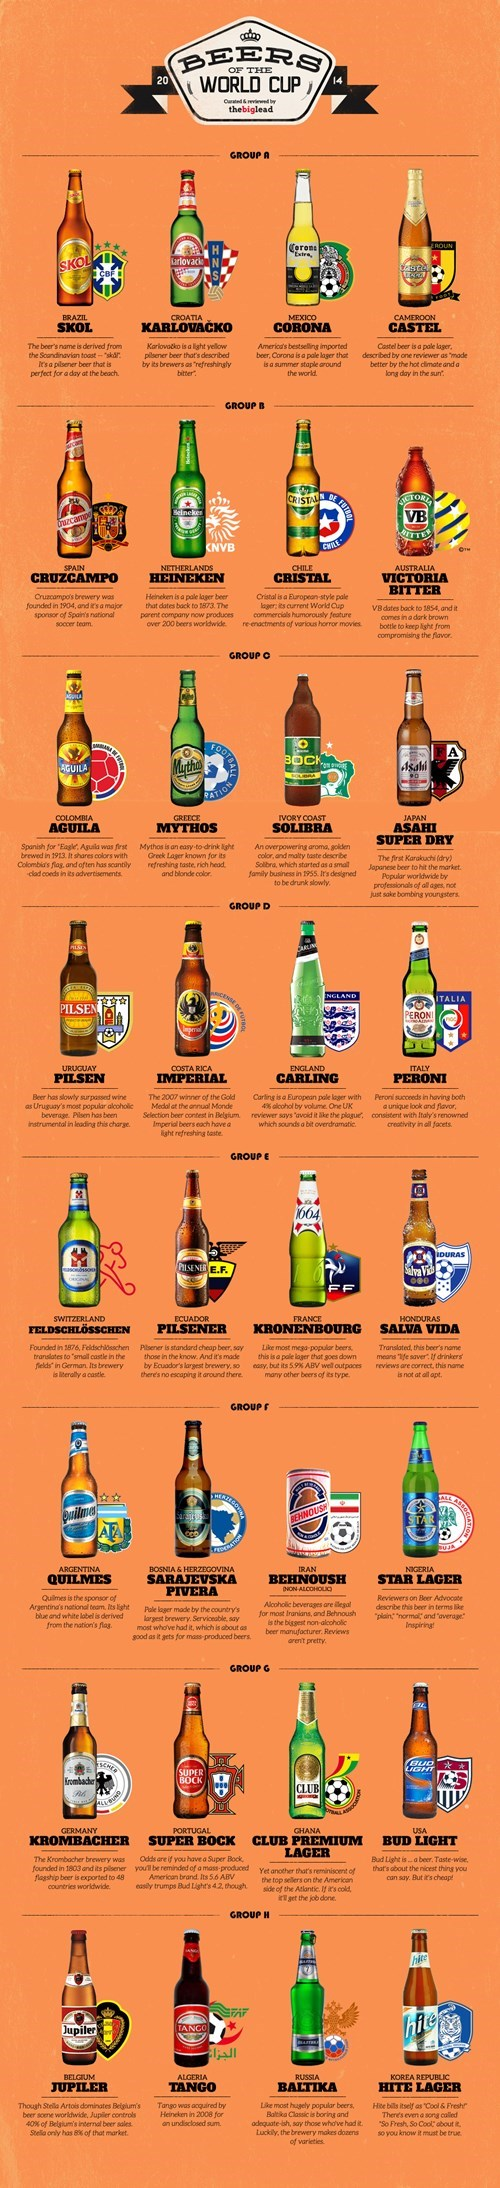 beer awesome funny world cup - 8220596480